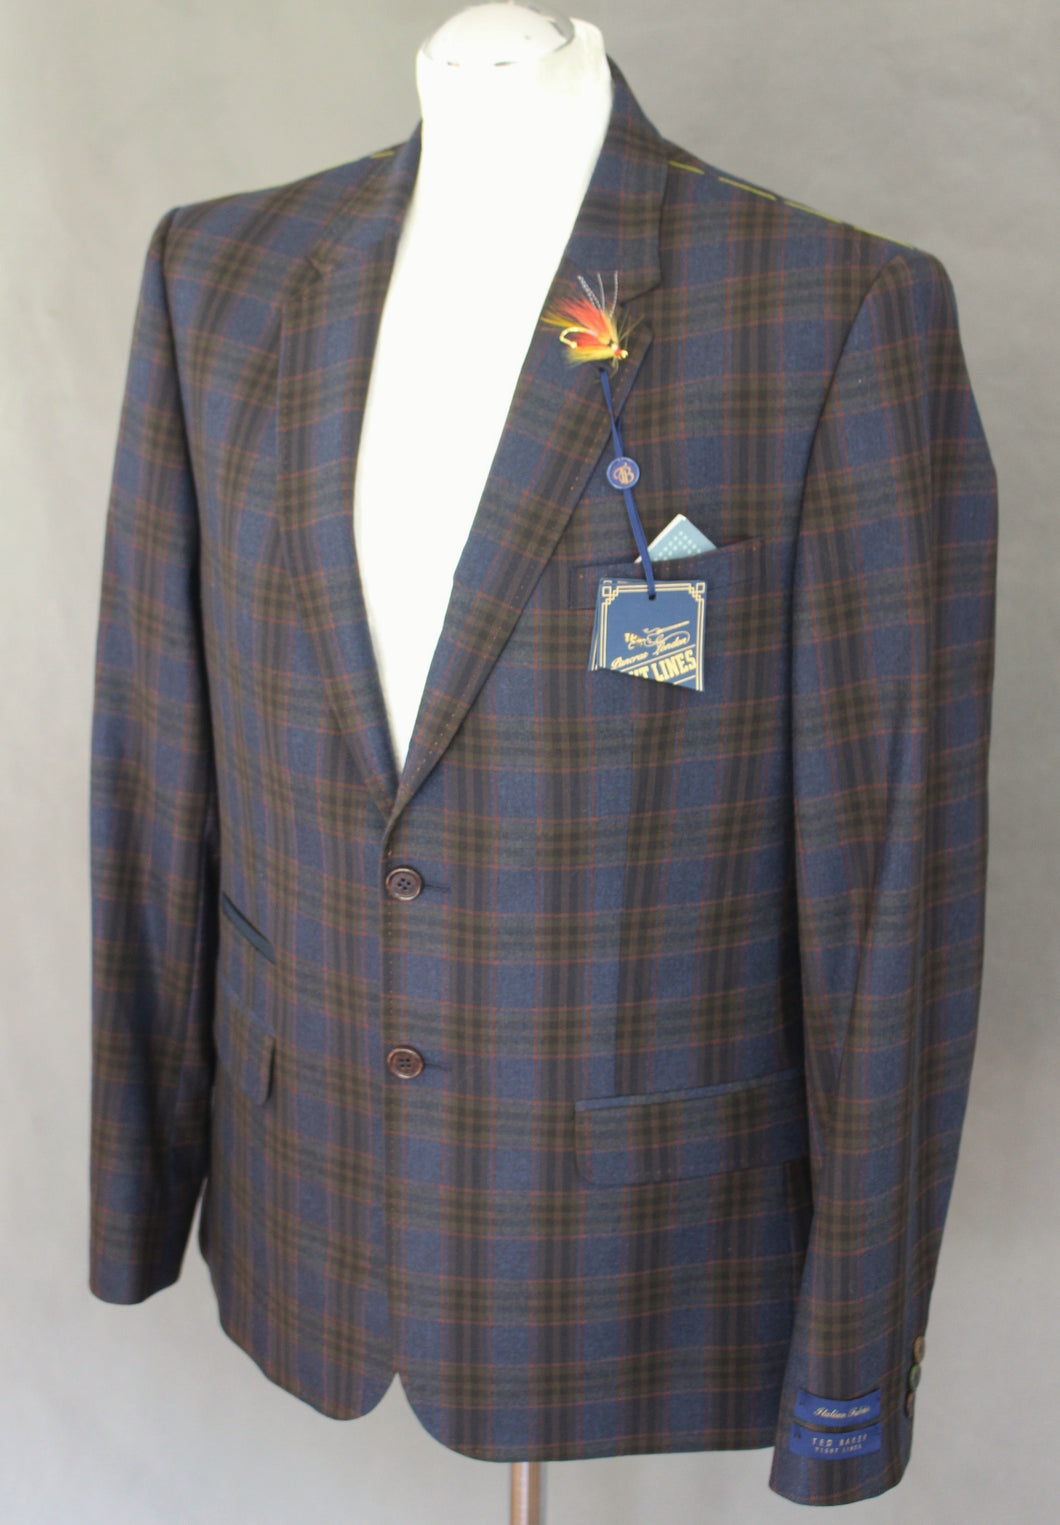 New TED BAKER Mens SABINES Checked BLAZER / JACKET - Size 40R - Chest 40